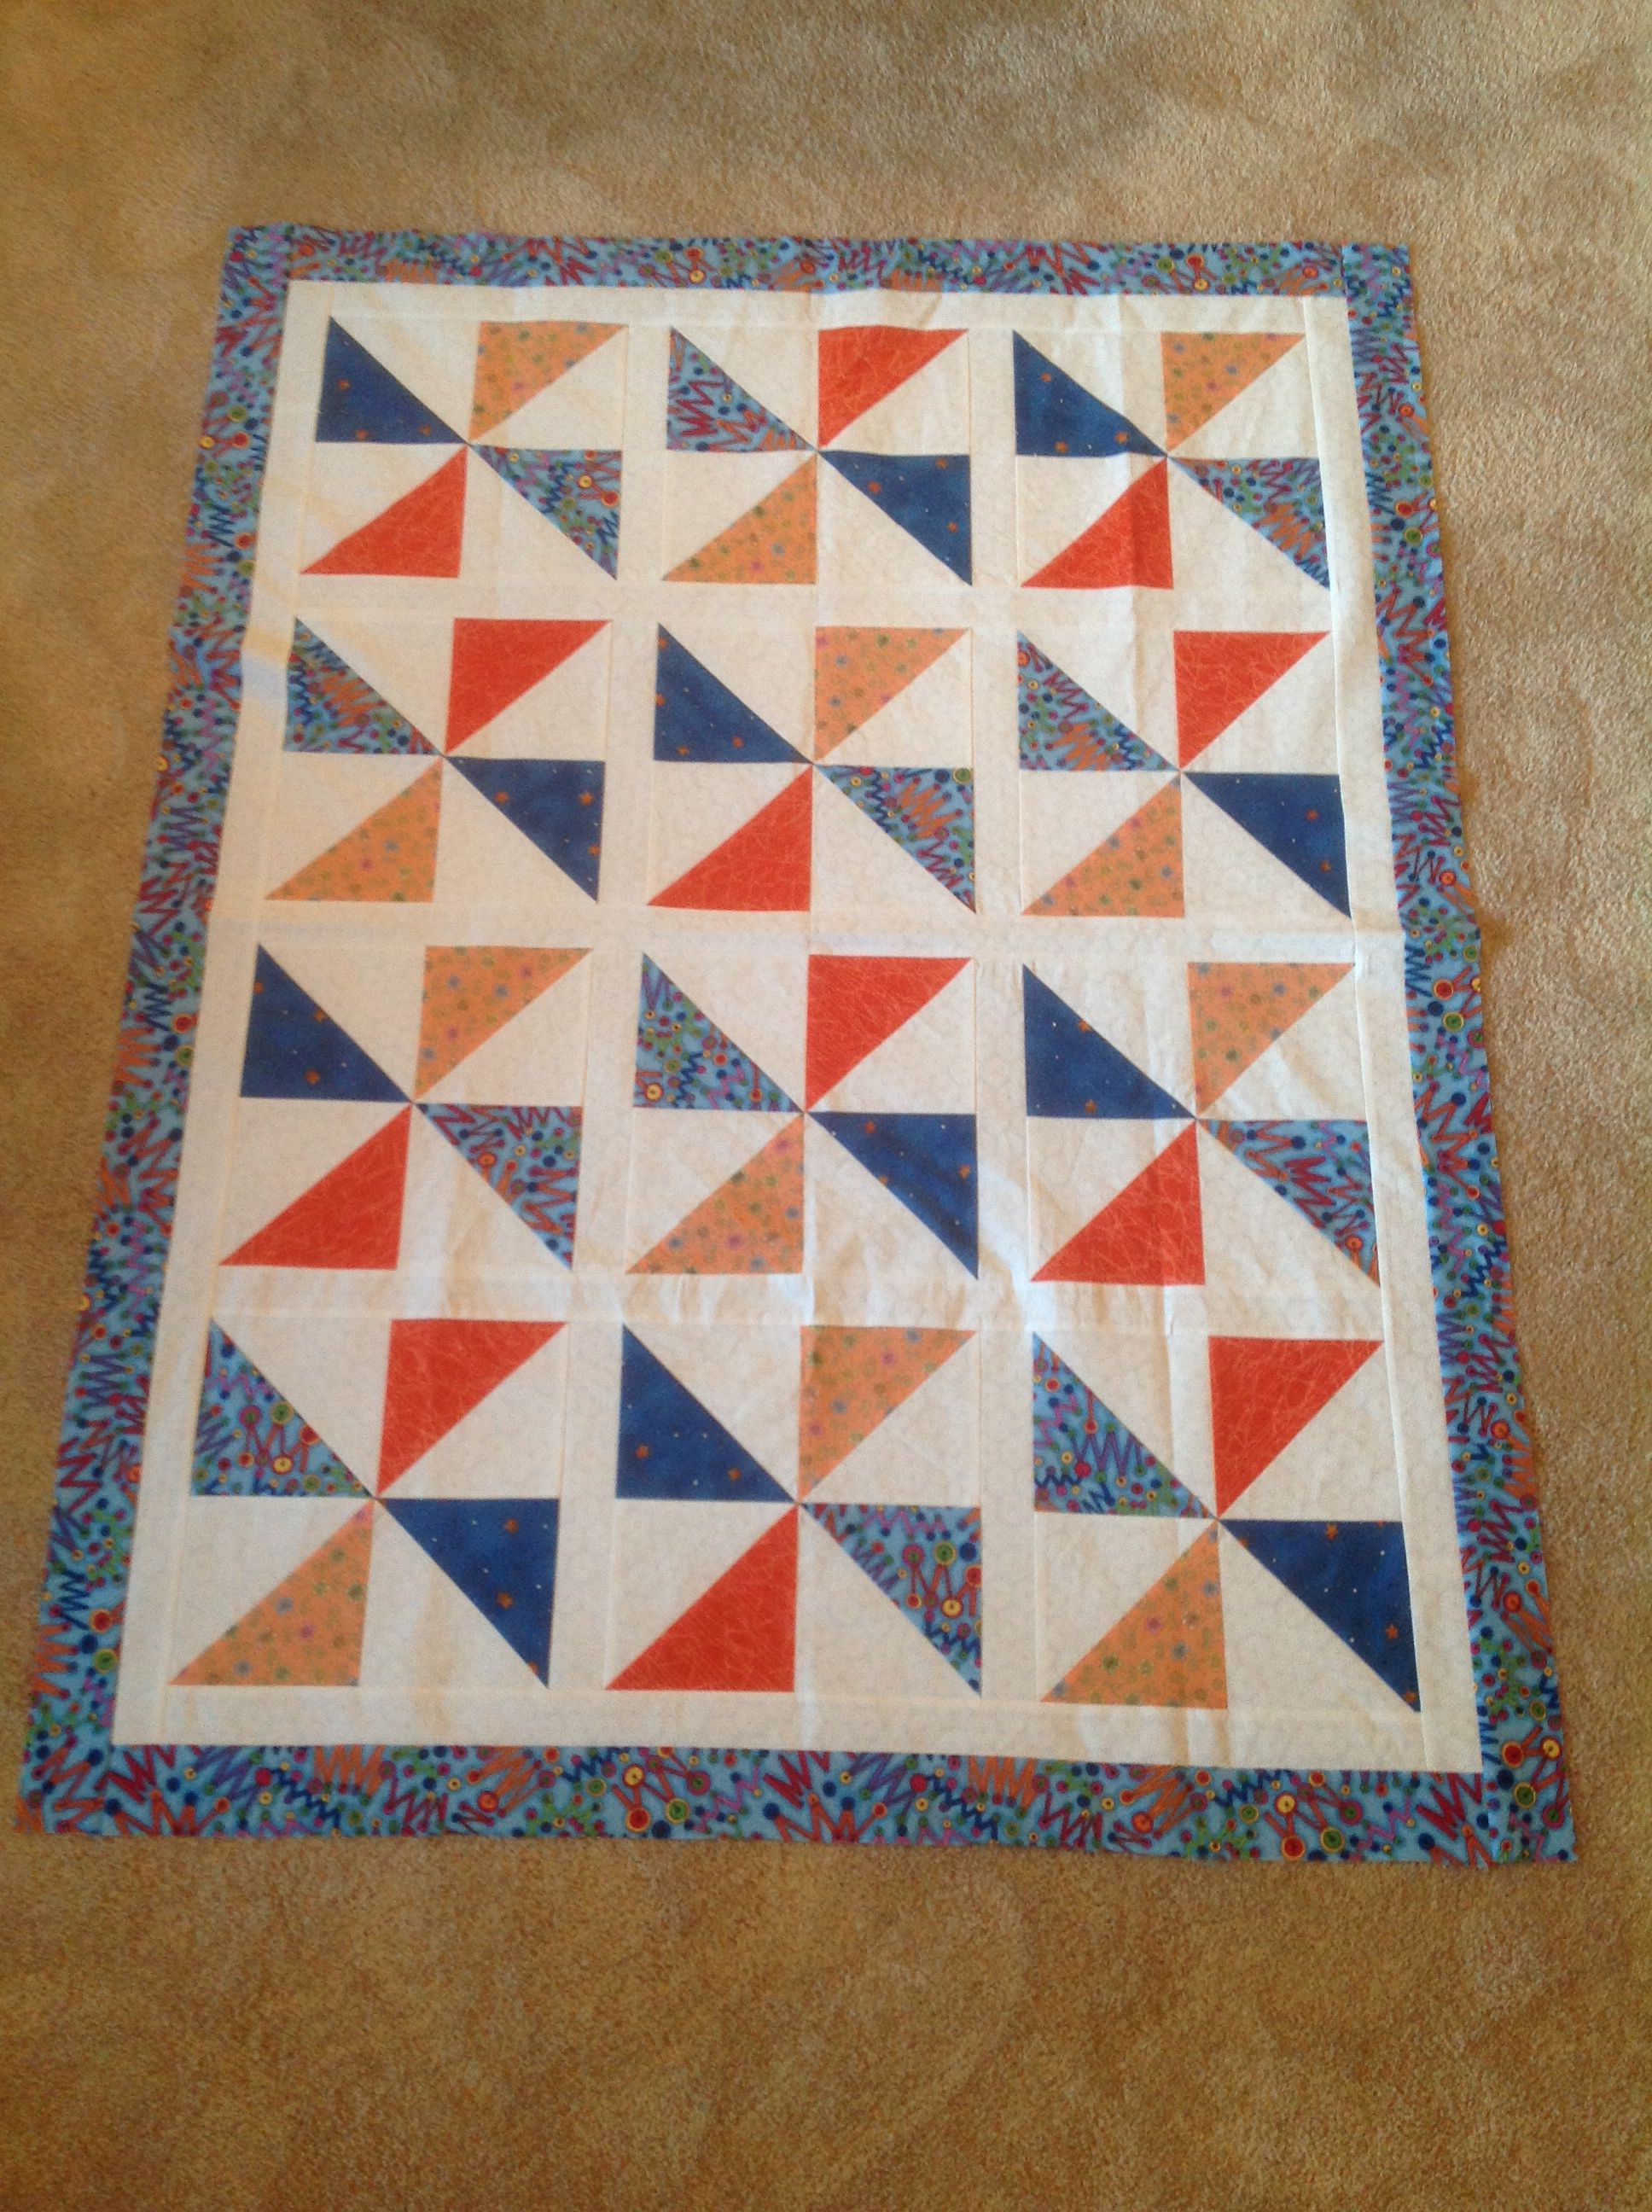 Another baby quilt top made with pinwheel block.  Ready for quilting.